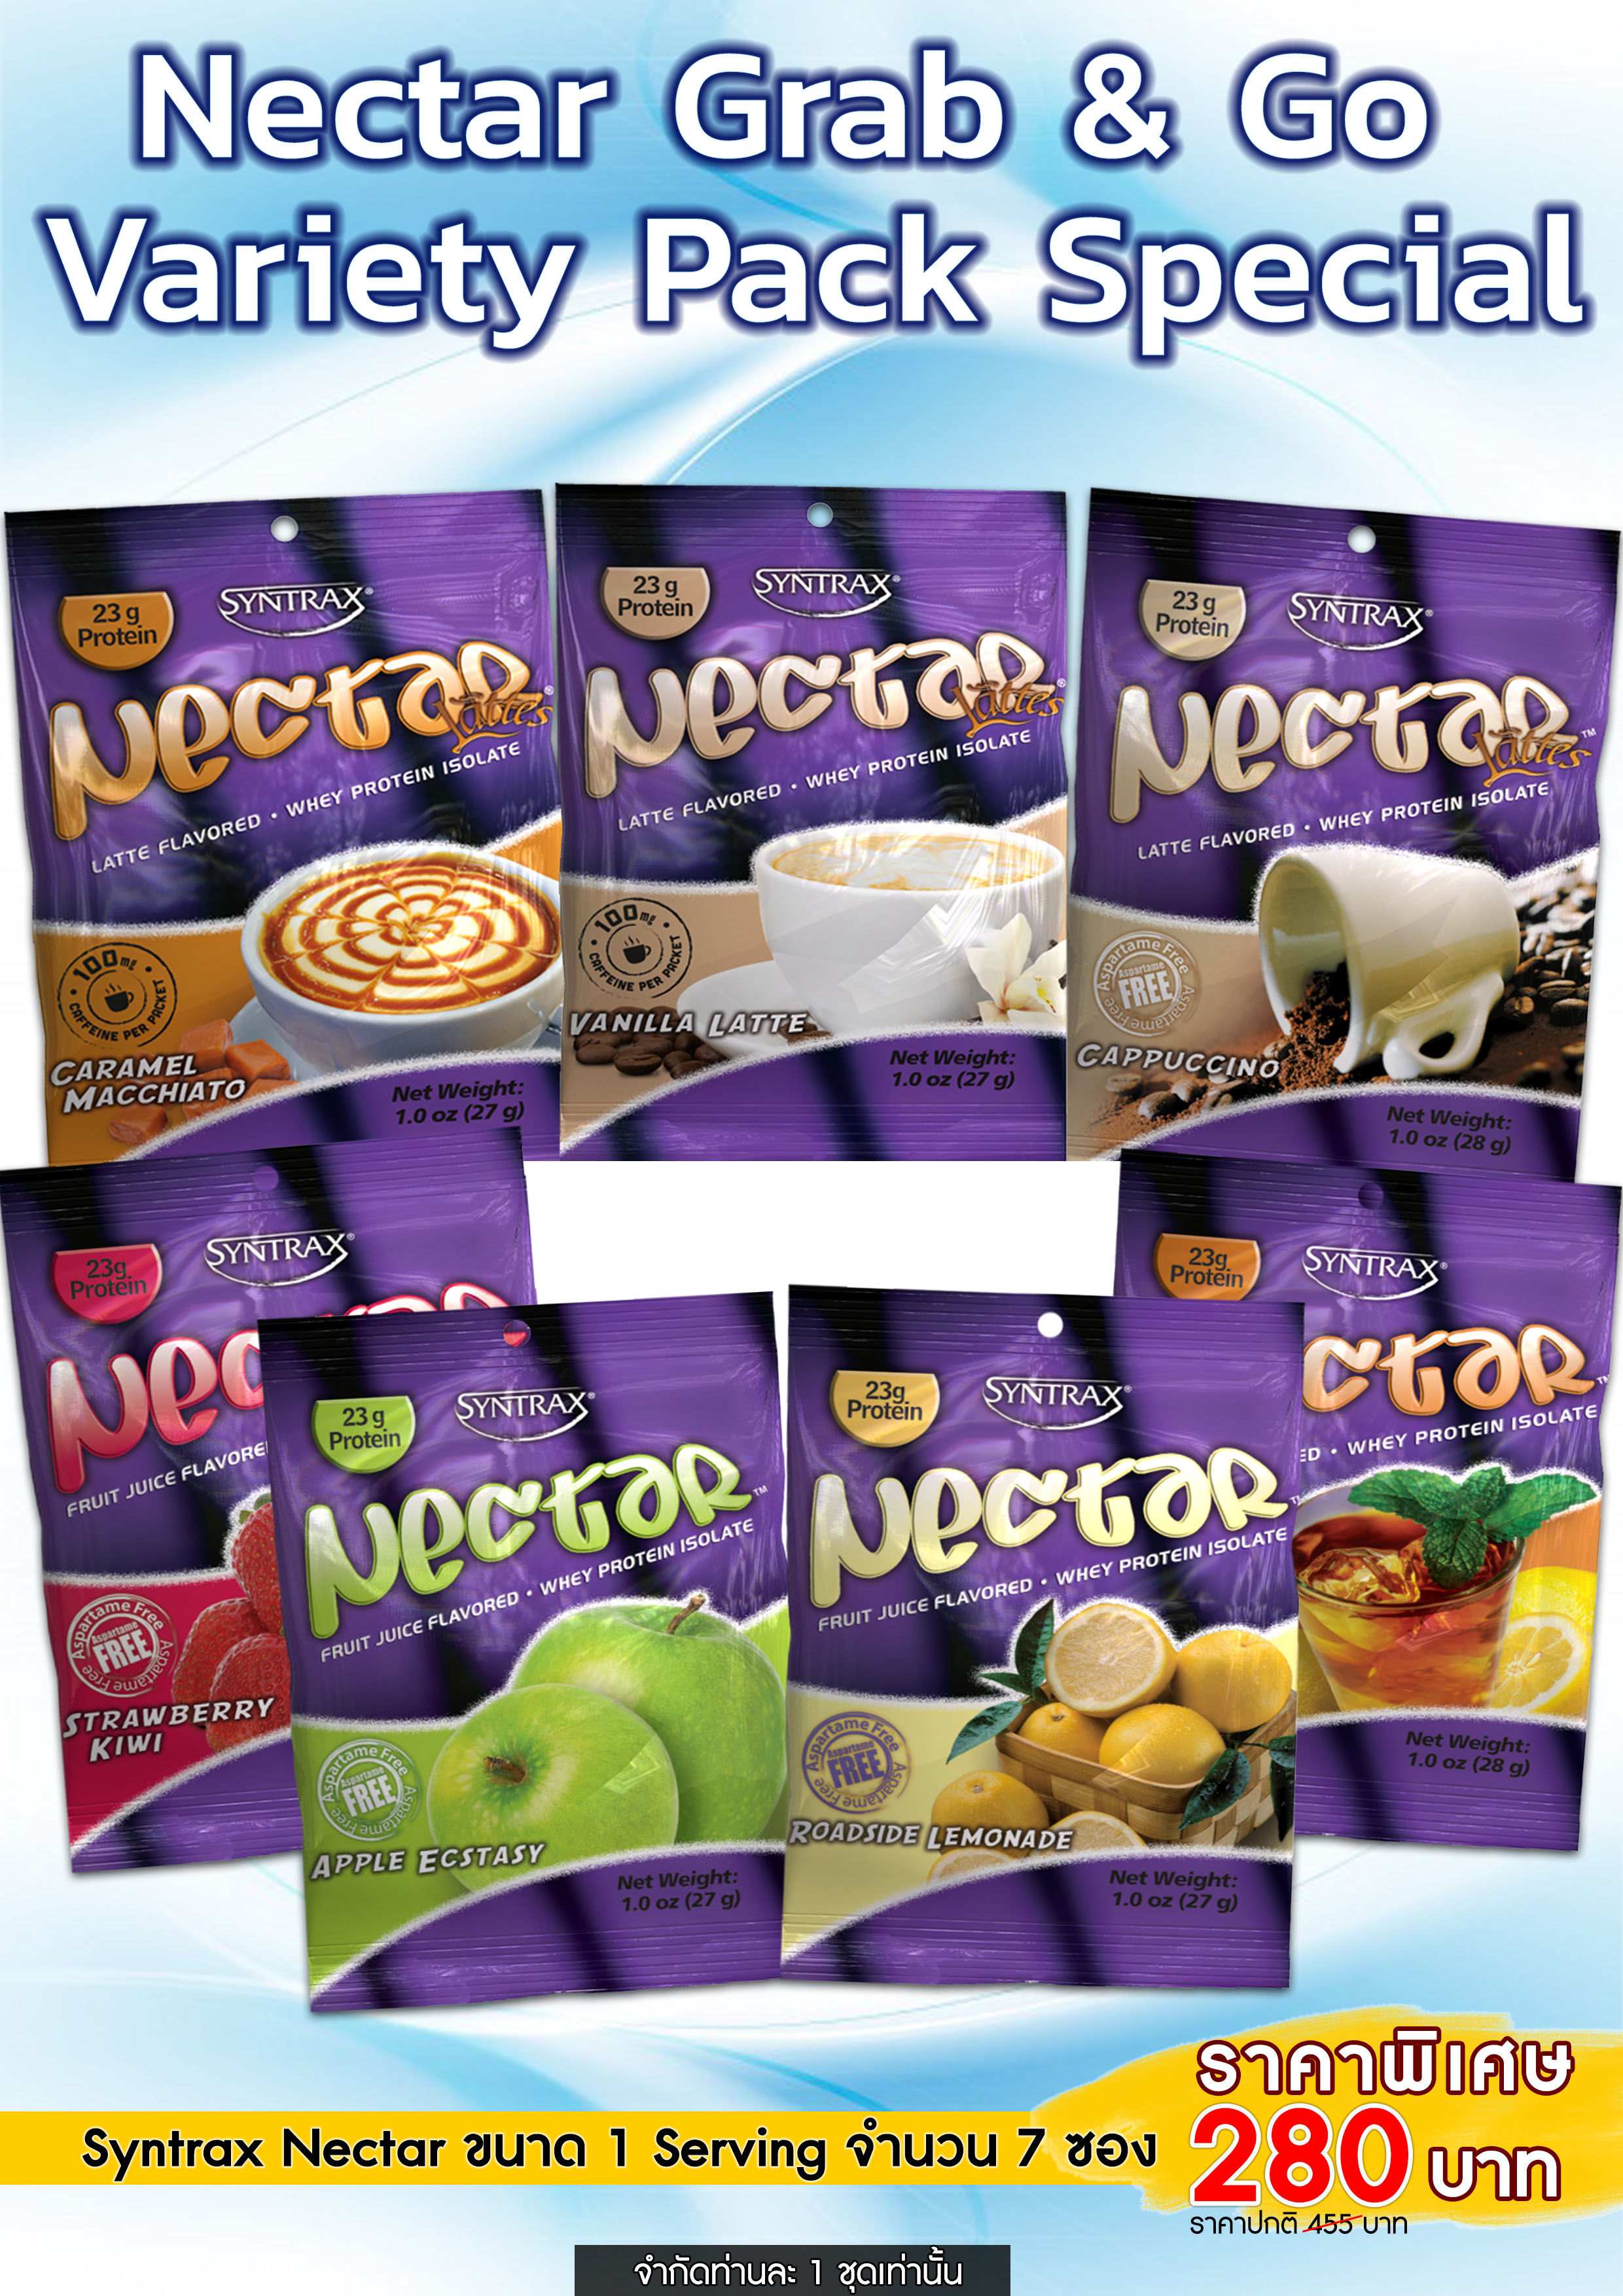 Syntrax Nectar Grab n Go Variety Pack Special